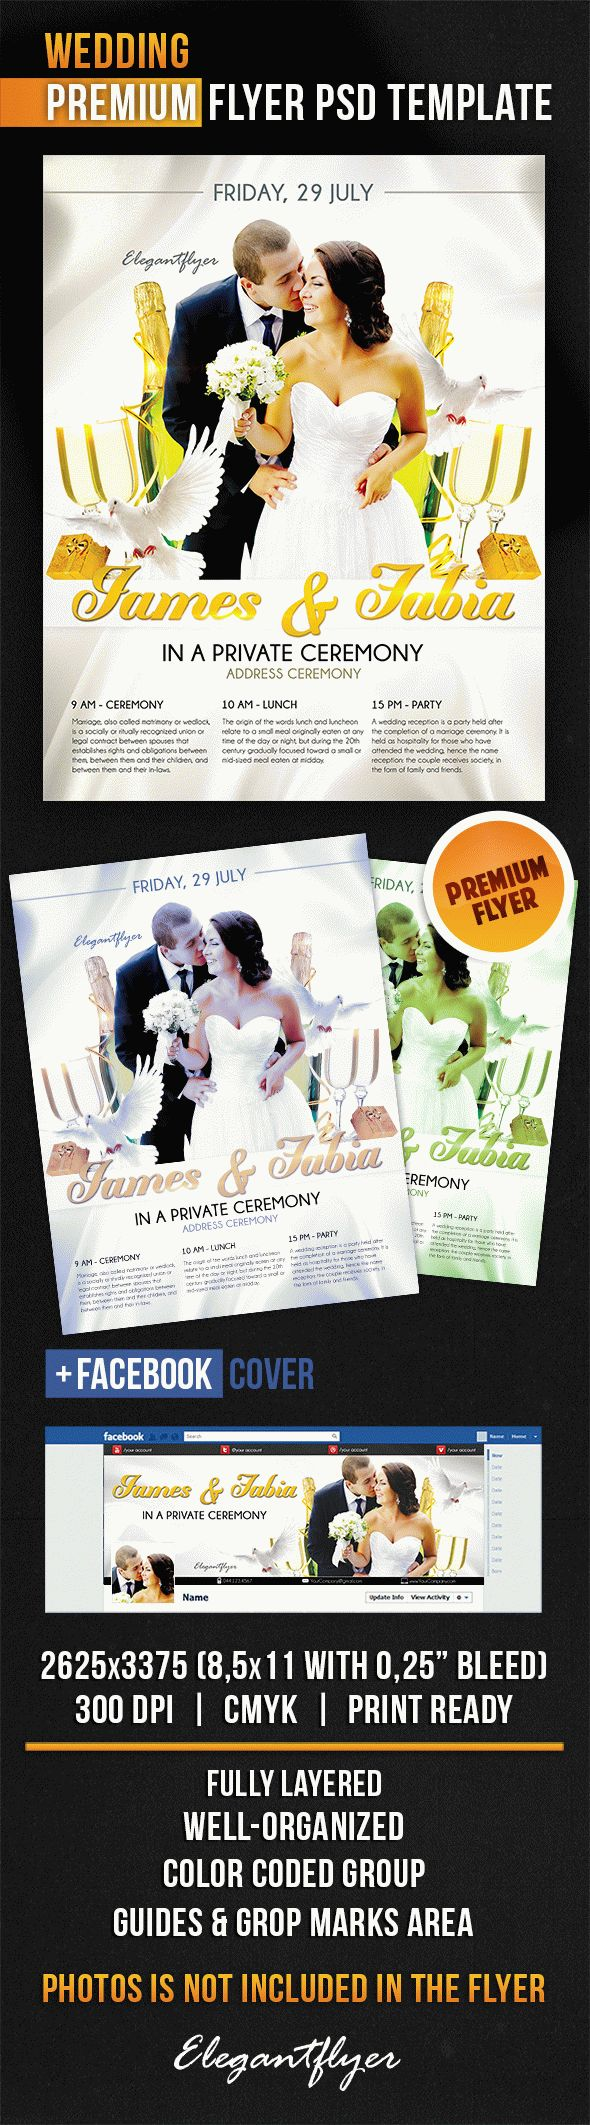 Wedding – Flyer PSD Template + Facebook Cover